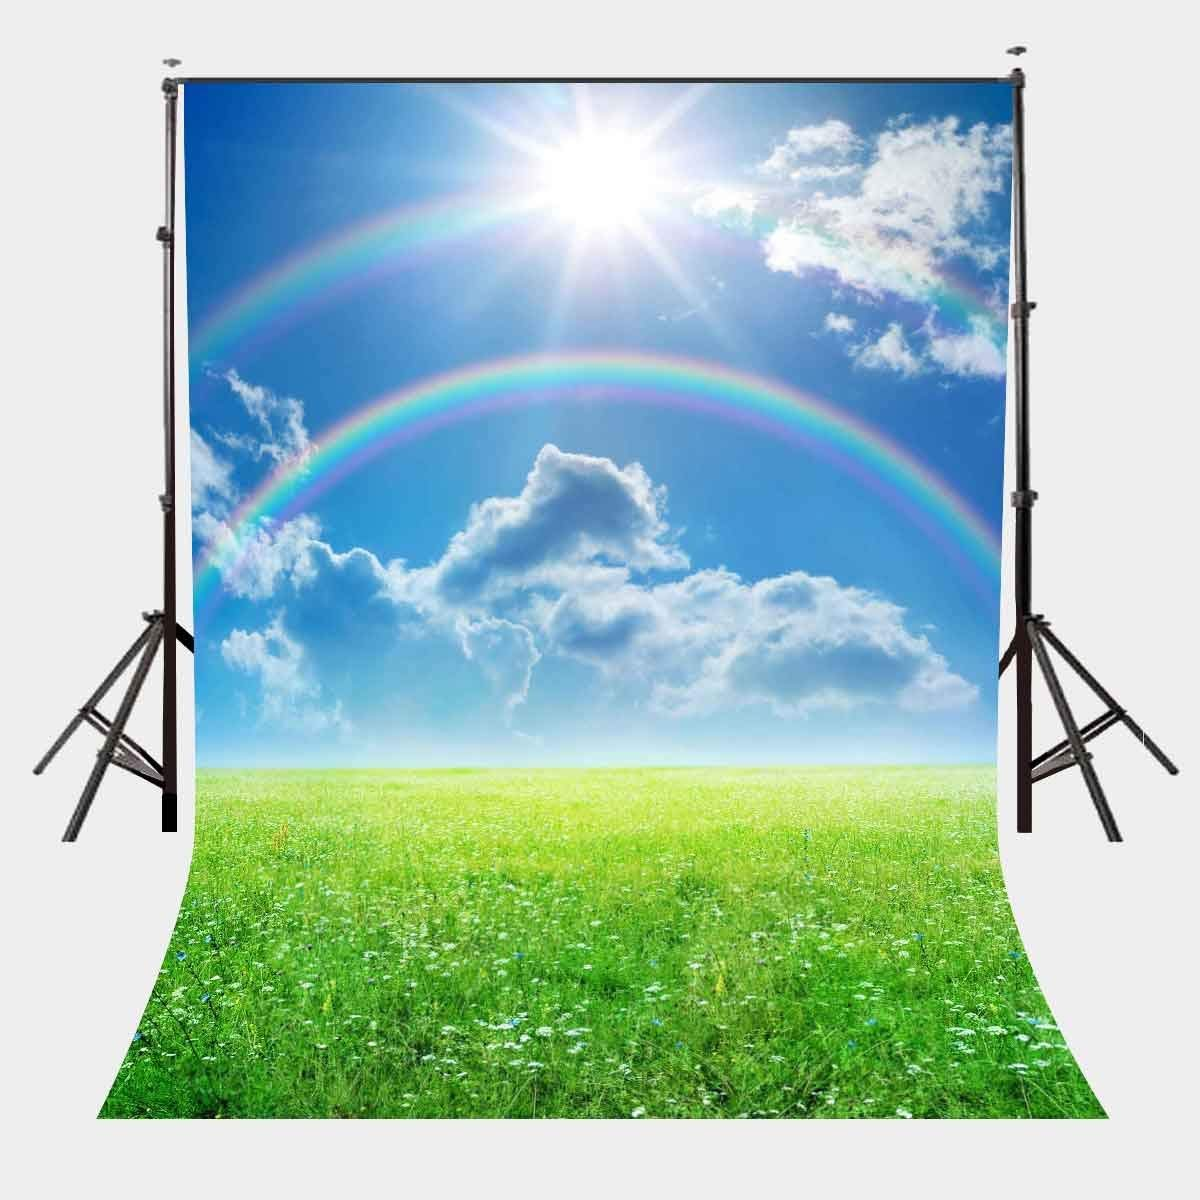 150x210cm Beautiful Natural Scene Backdrop Colorful Rainbow Sunny Sky Green Grassland Photography Background